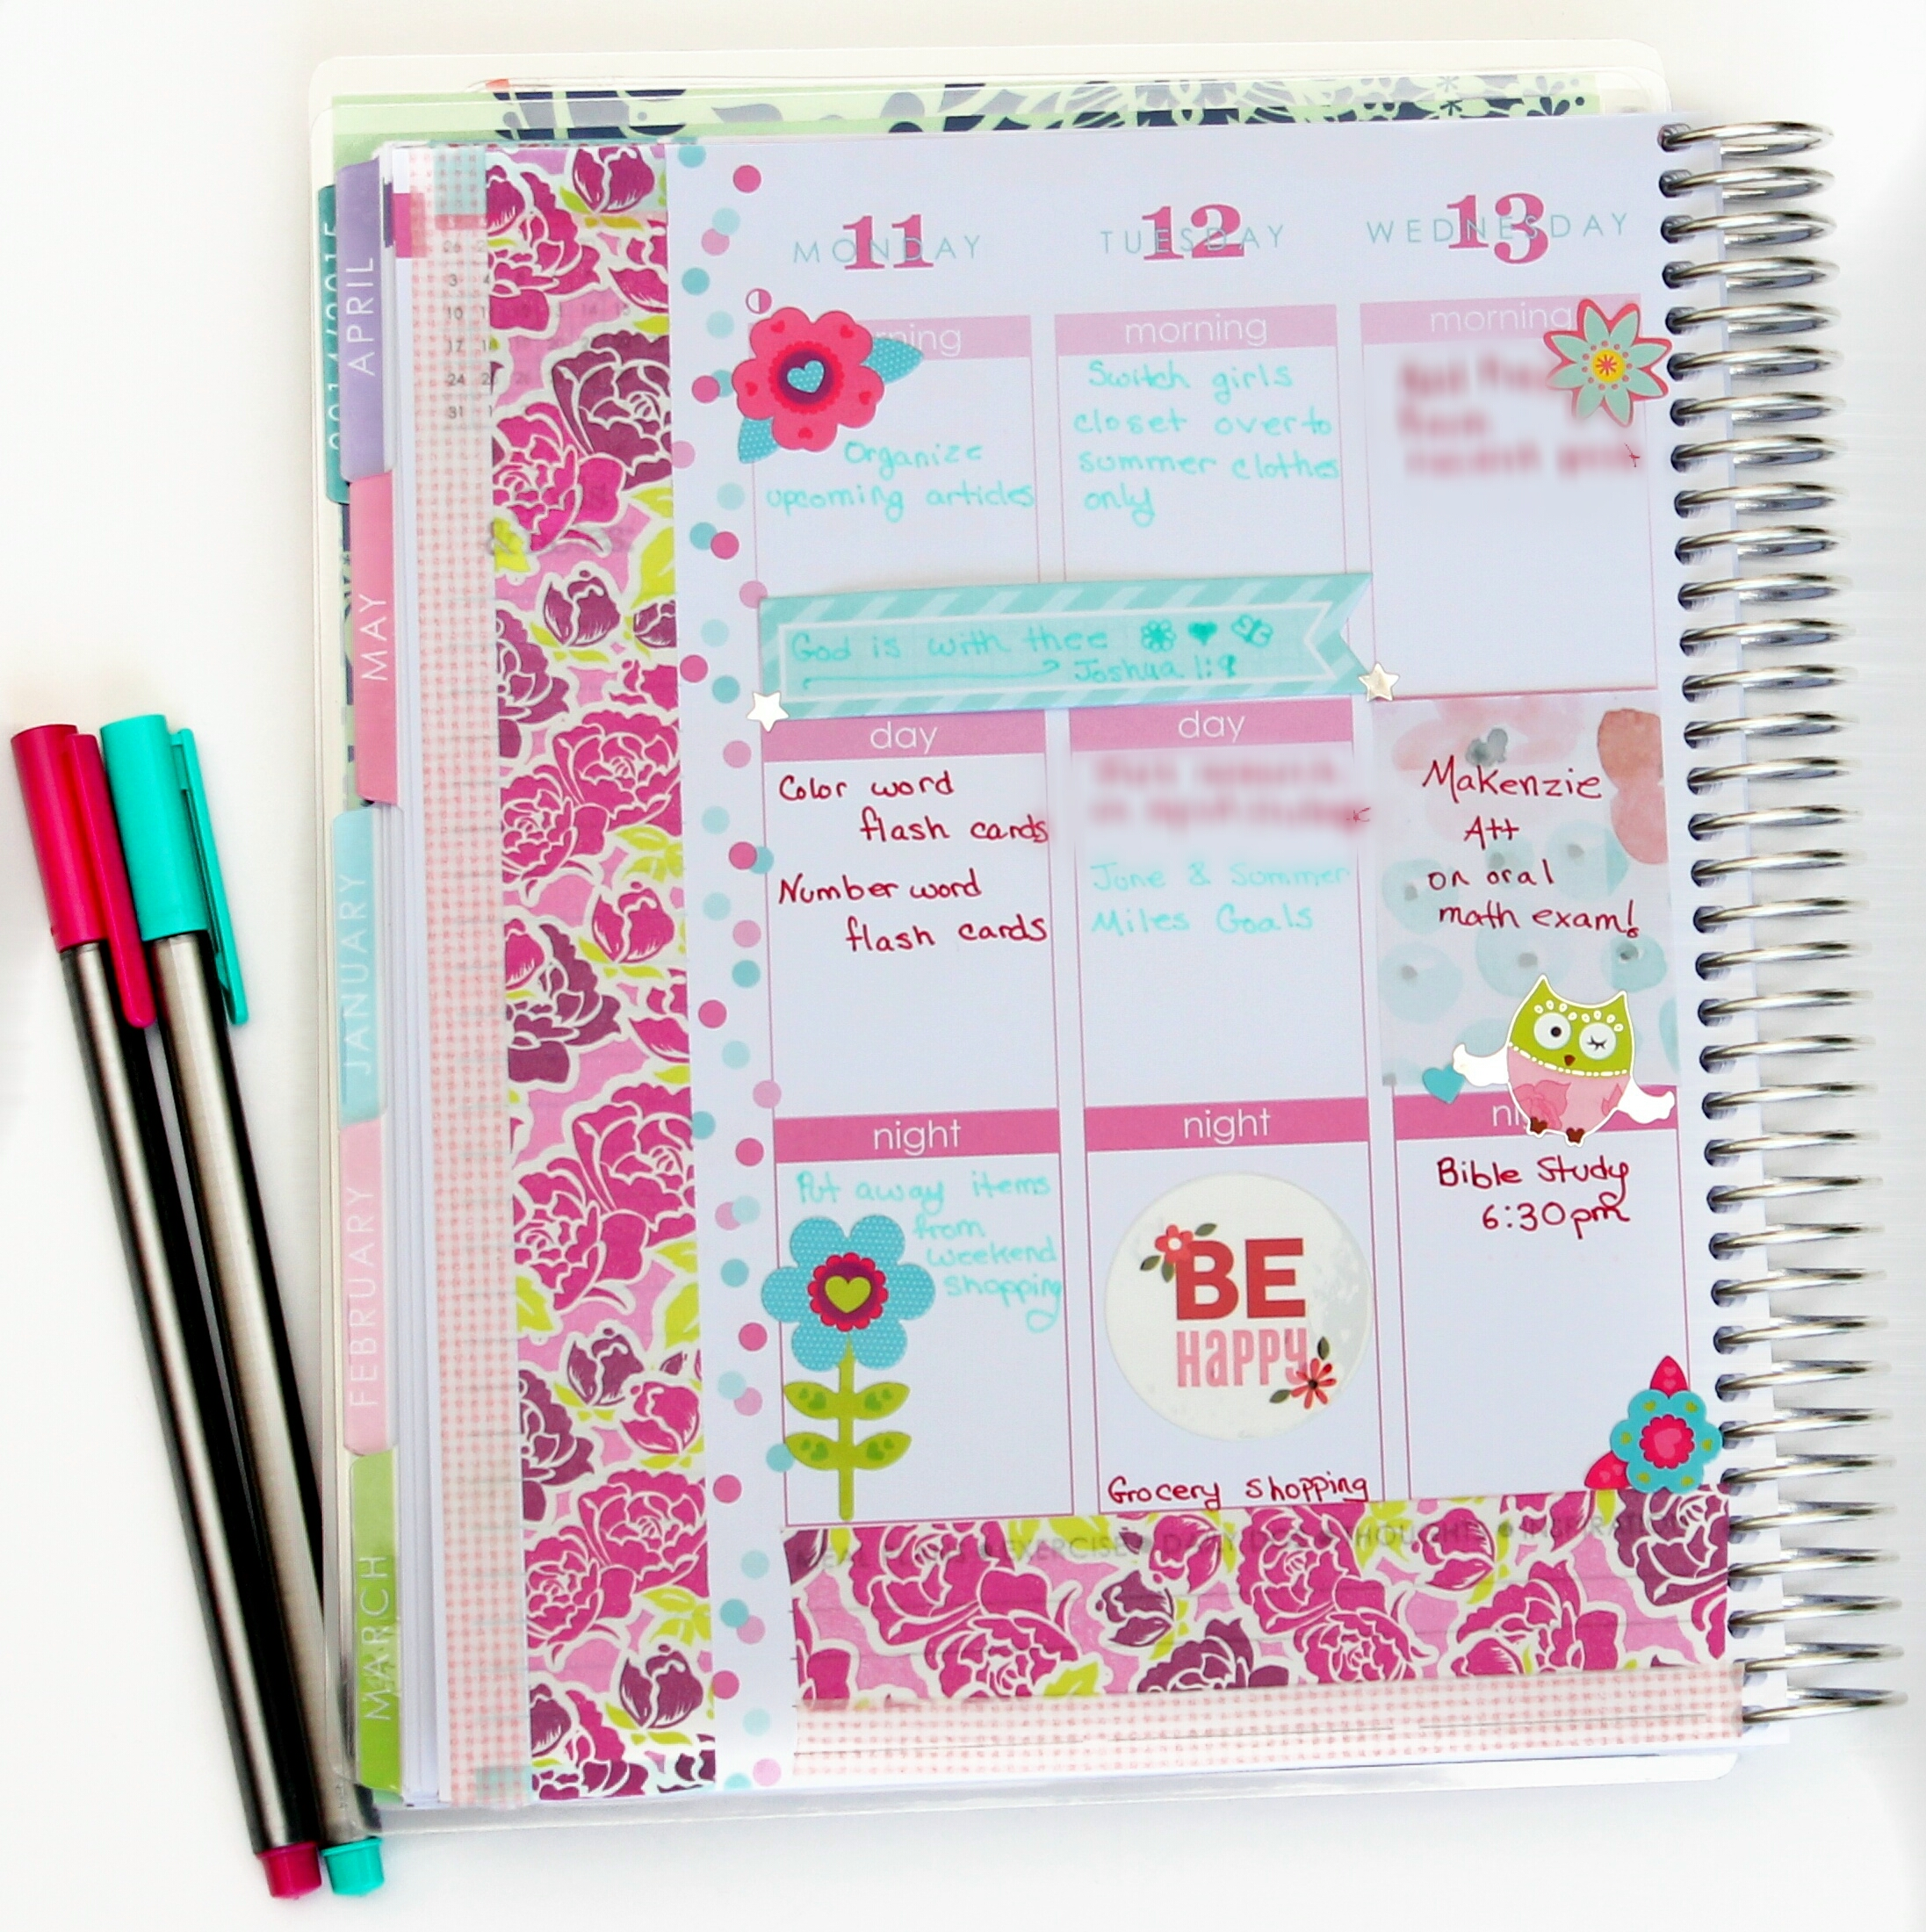 my May 2015 decorated planner pages in my Erin Condren Planner using washi tape, masking tape and stickers